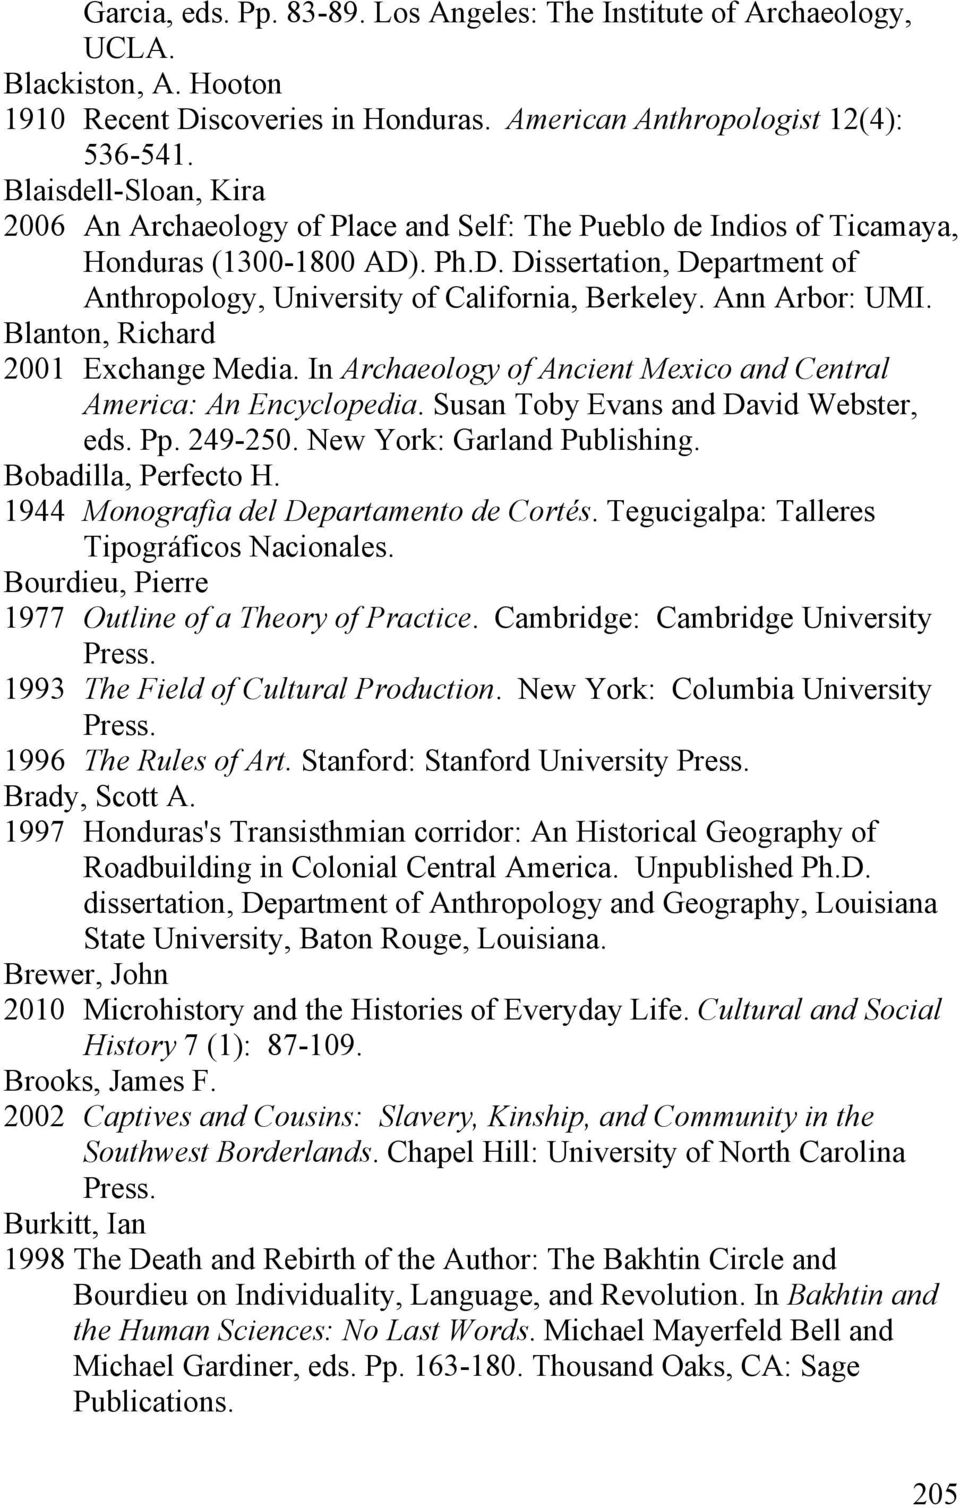 Ann Arbor: UMI. Blanton, Richard 2001 Exchange Media. In Archaeology of Ancient Mexico and Central America: An Encyclopedia. Susan Toby Evans and David Webster, eds. Pp. 249-250.